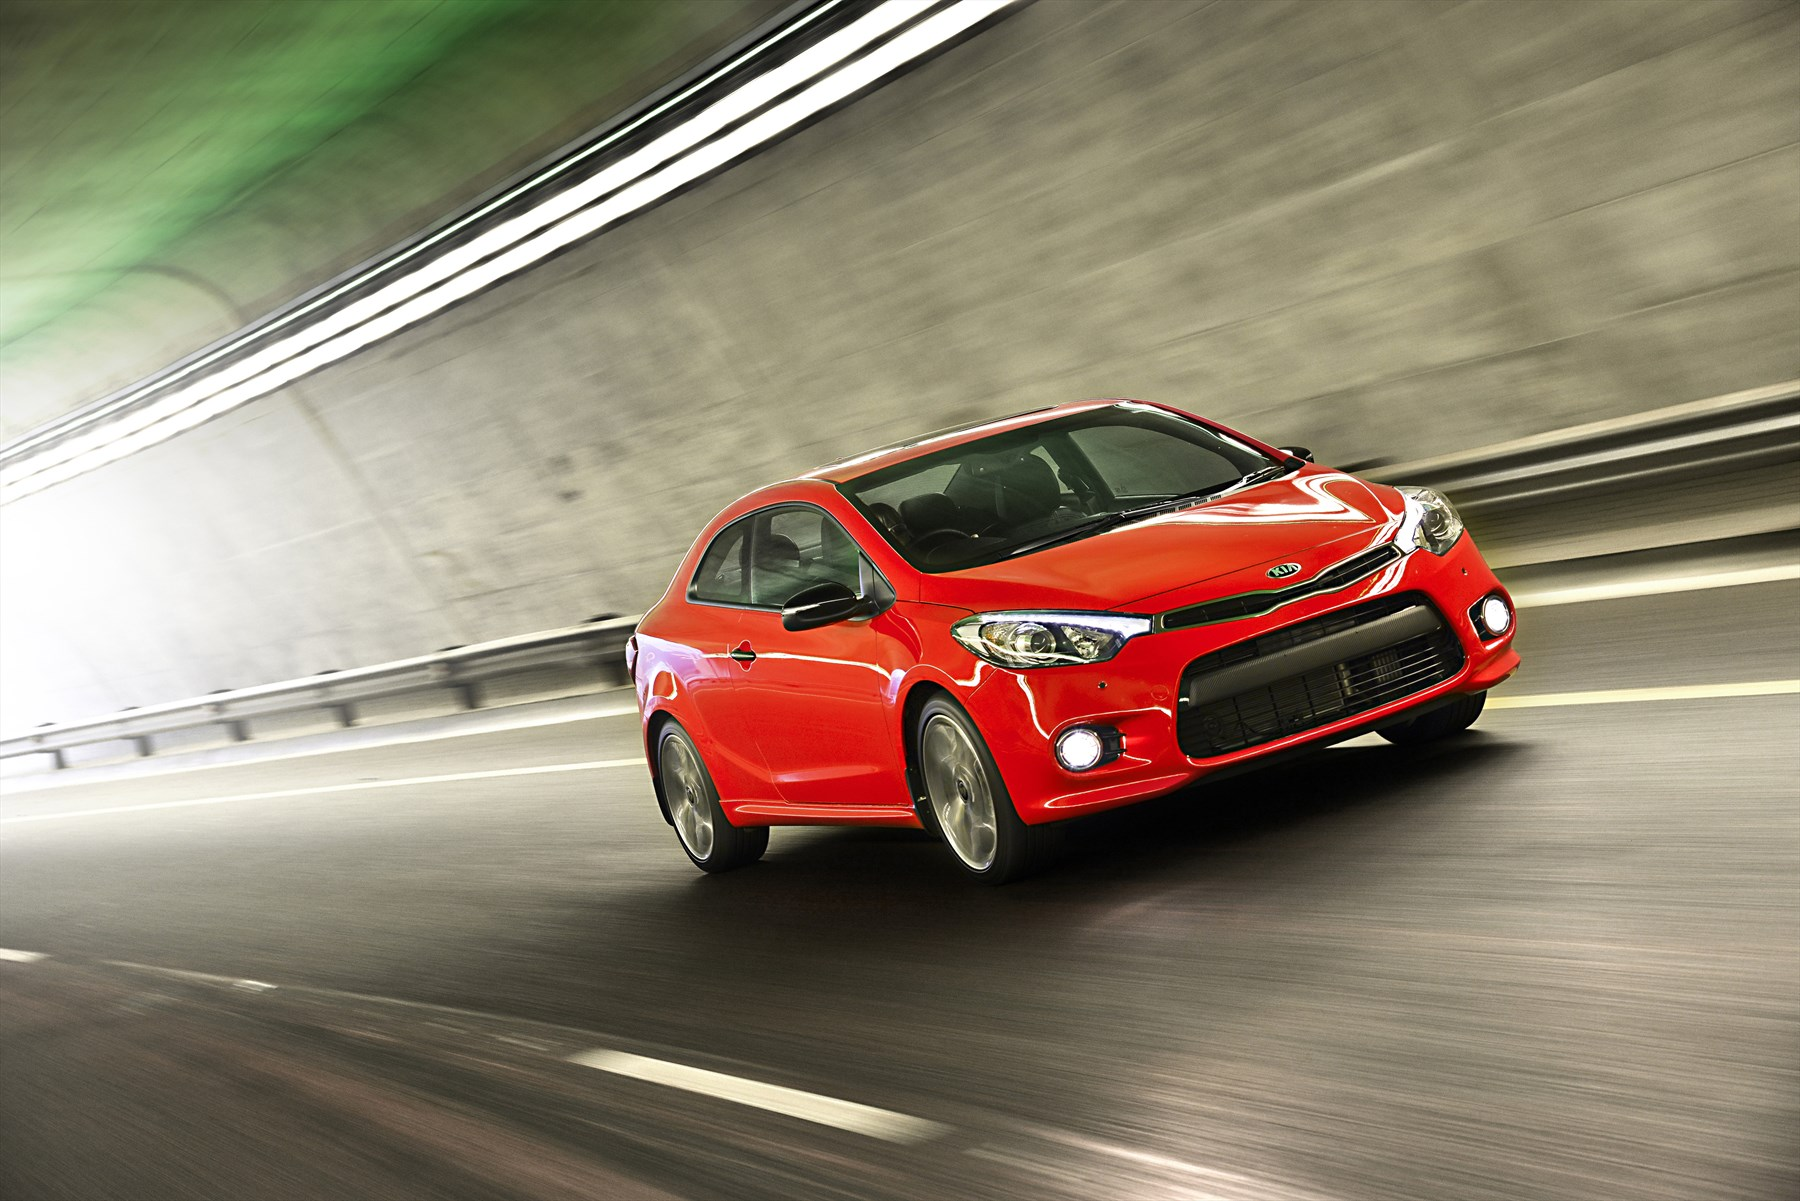 Kia Cerato Koup 1.6 GDi Manual (2014): New Car Review